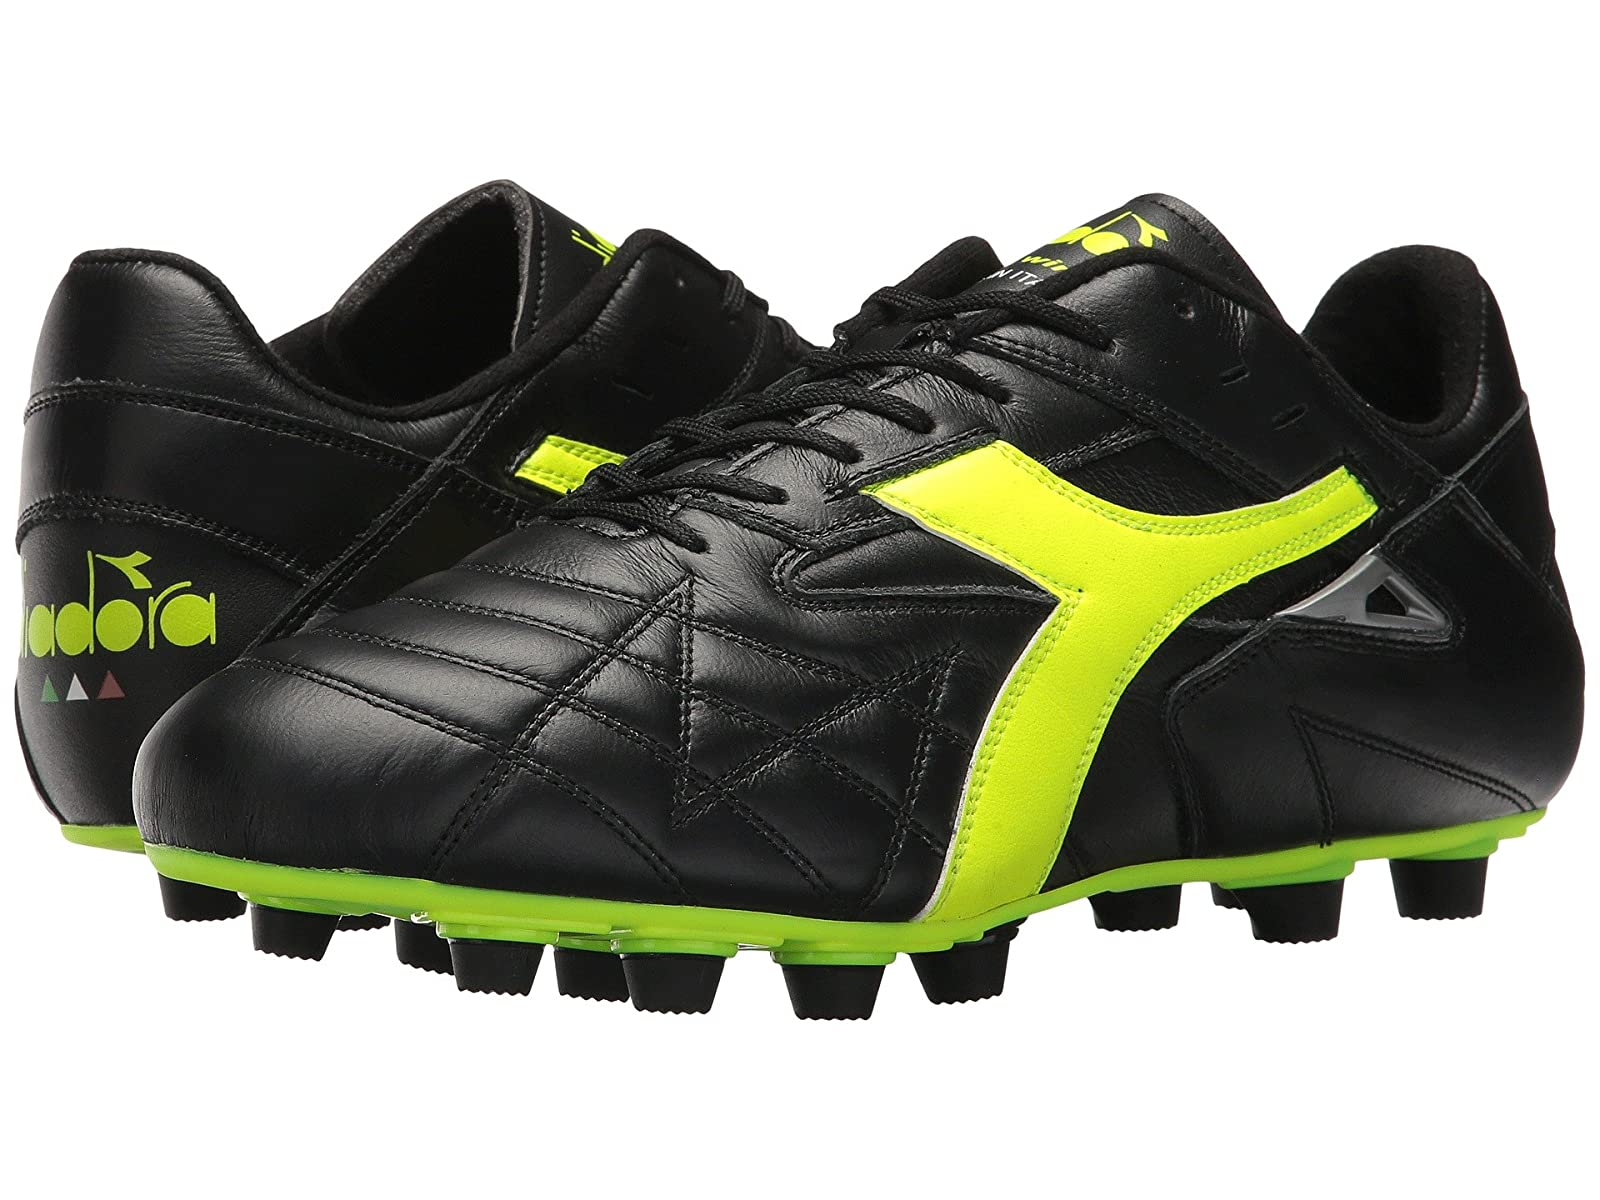 Diadora M. Winner RB Italy LTCheap and distinctive eye-catching shoes